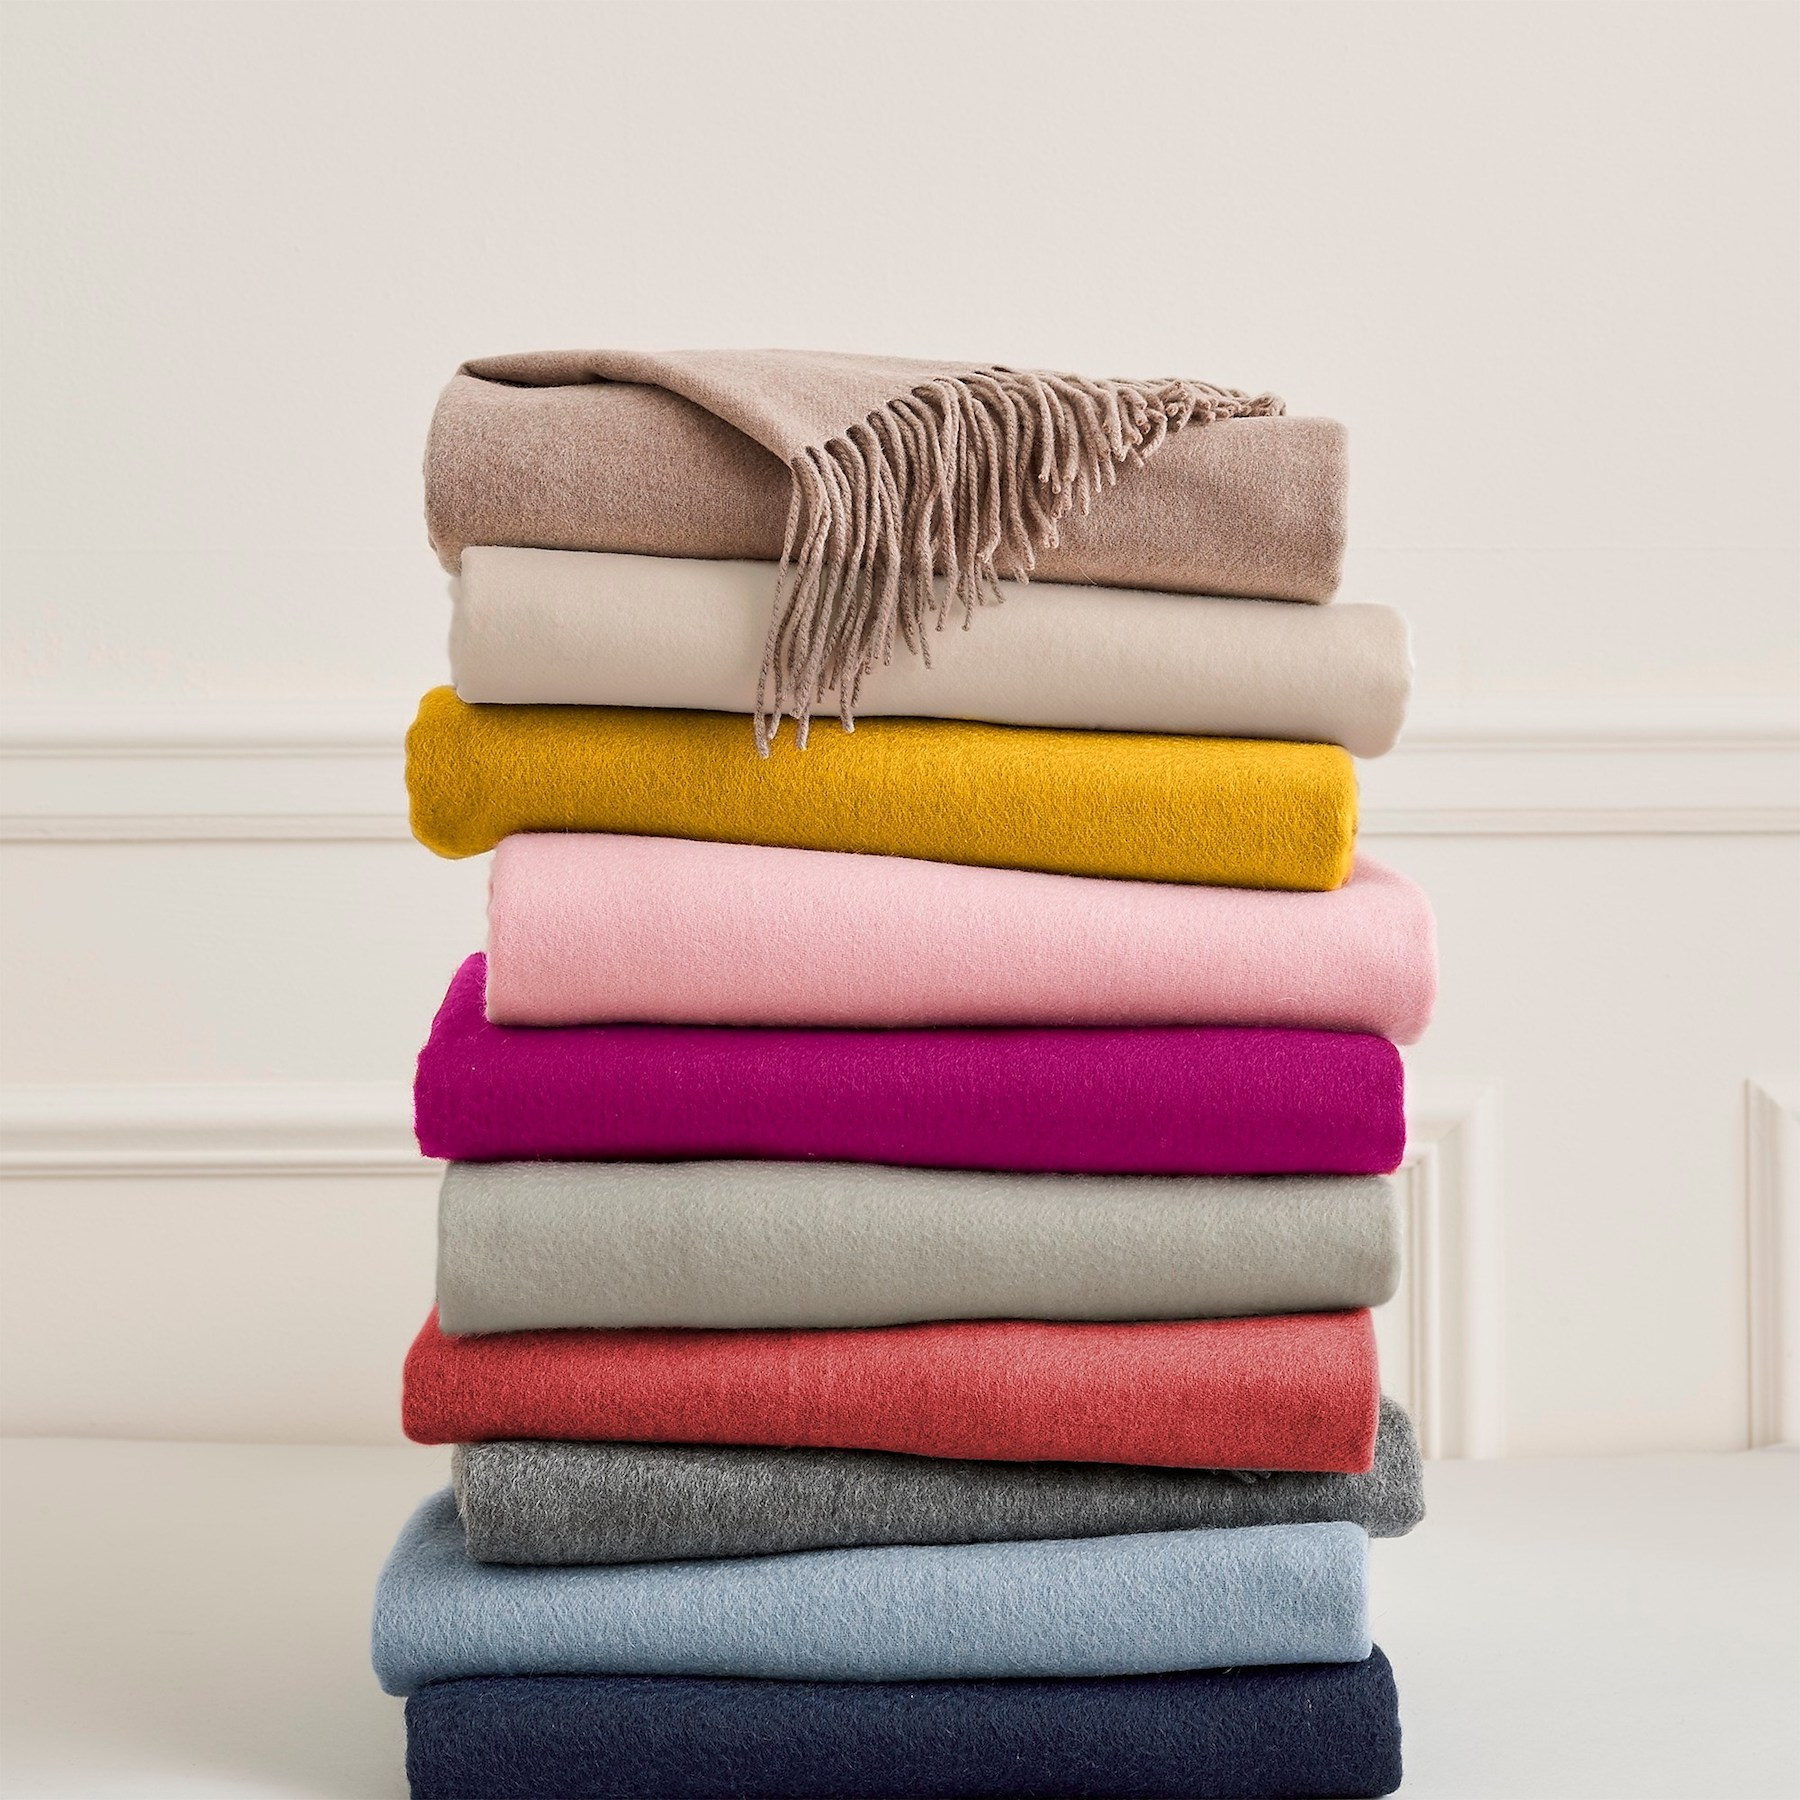 J.Crew Cashmere Blankets in multiple colors